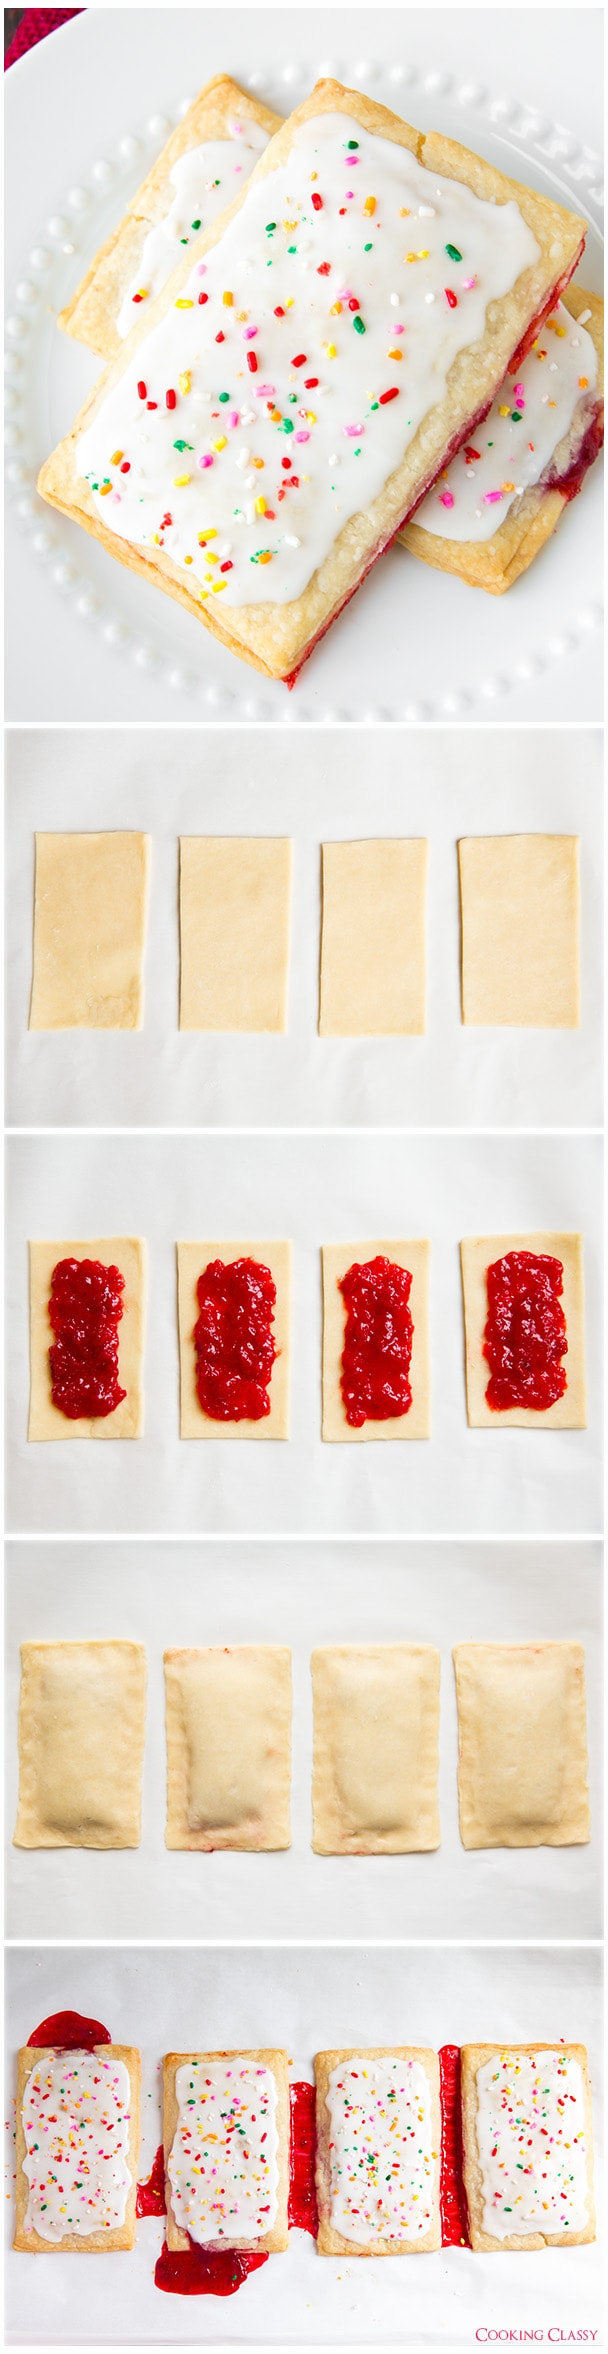 Homemade Pop Tarts | Cooking Classy